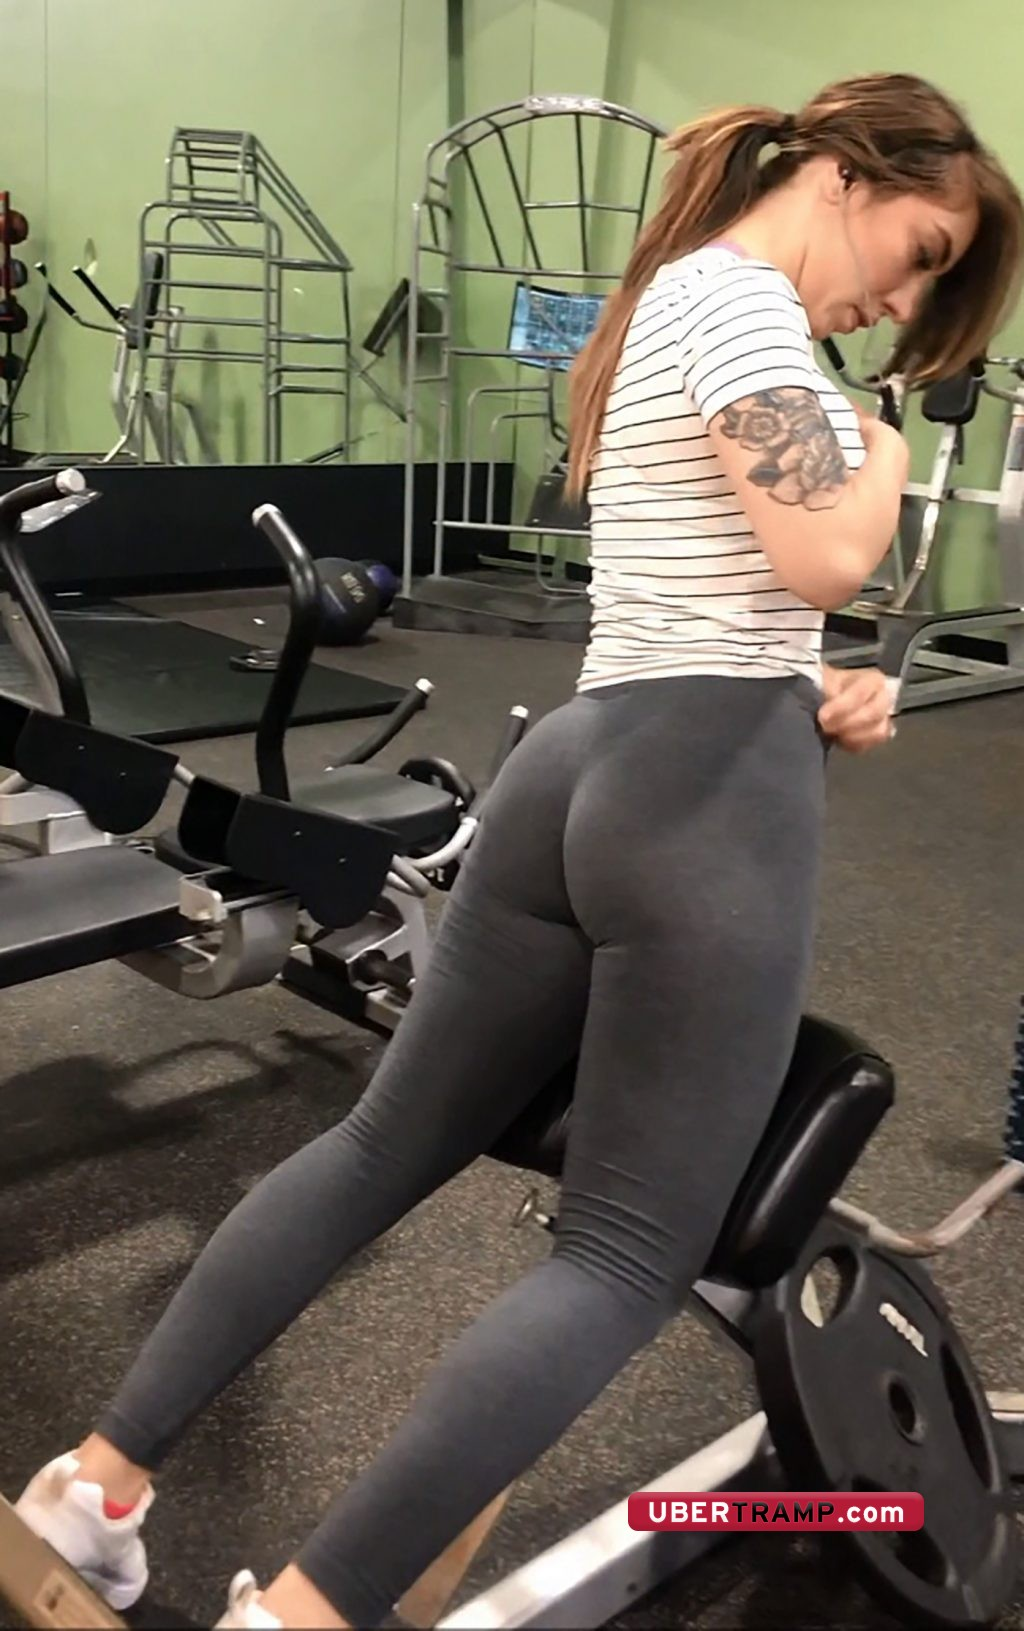 Gorgeous girl with tight clenched ass is recorded by gym voyeur